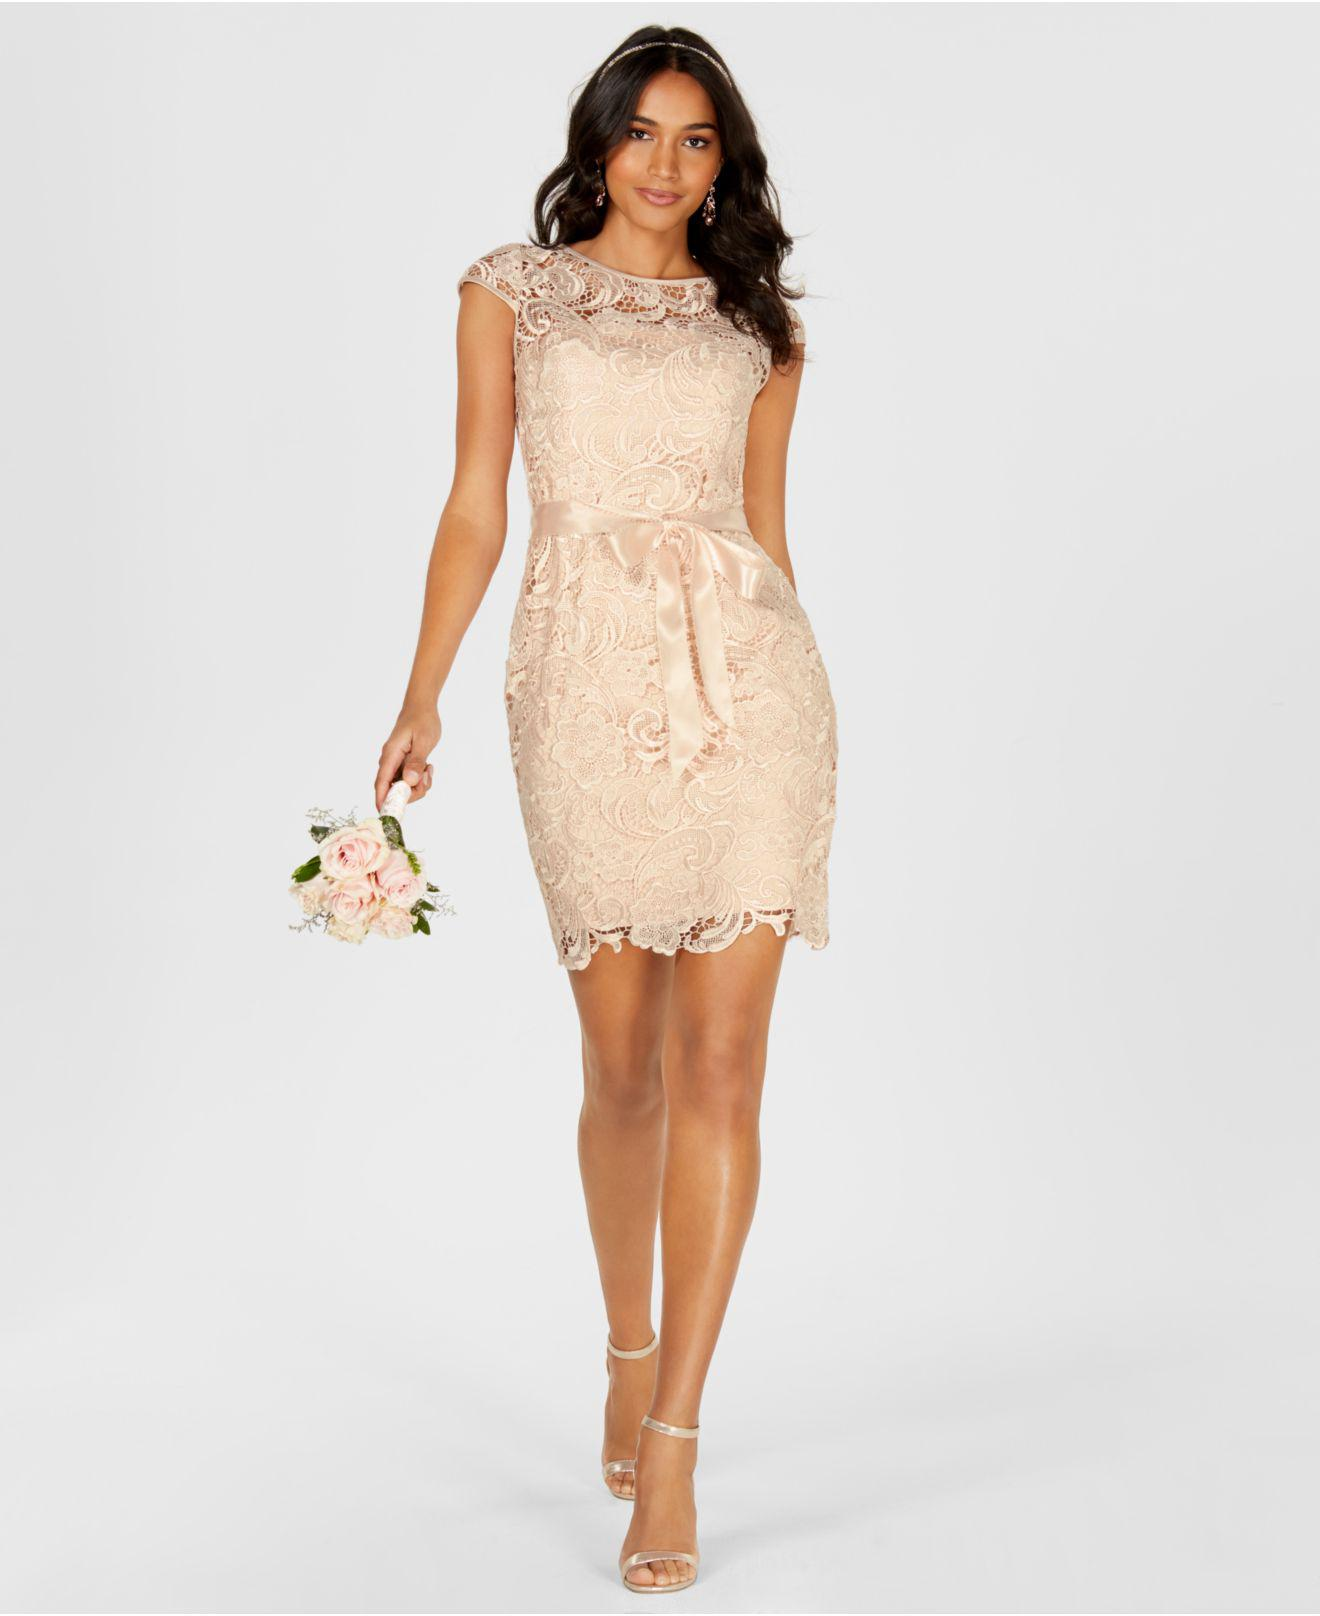 d277f8e82a60 Gallery. Previously sold at: Macy's · Women's Adrianna Papell Lace Dress  Women's Adrianna Papell Sheath ...